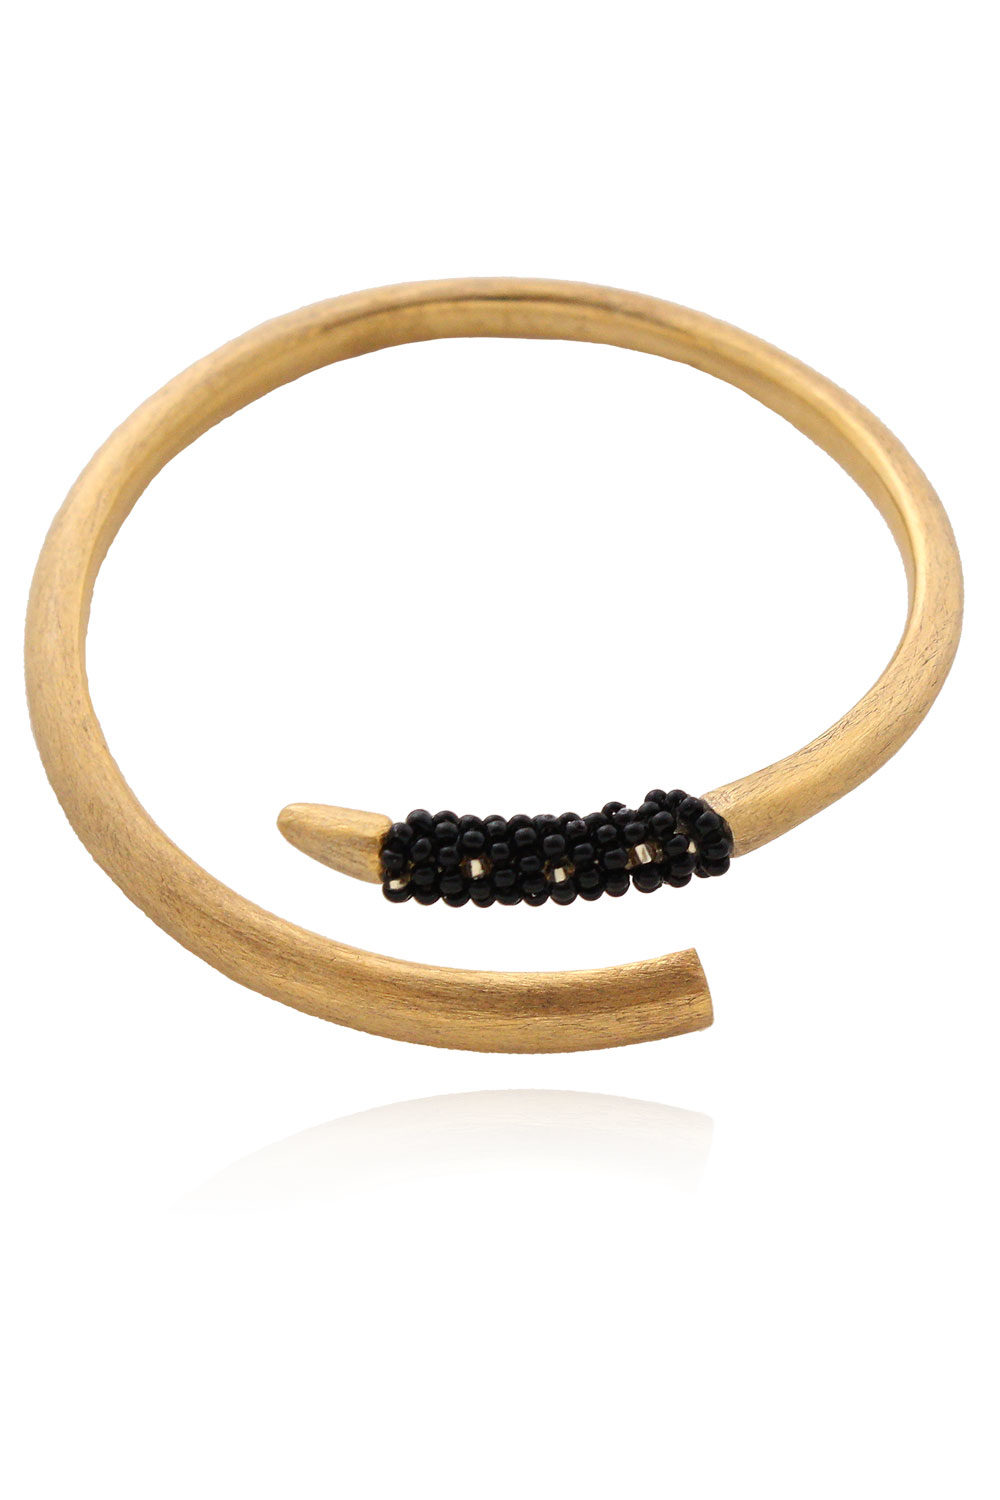 Vogue Tusk Bangle Black Beaded by SHIKHAZURI